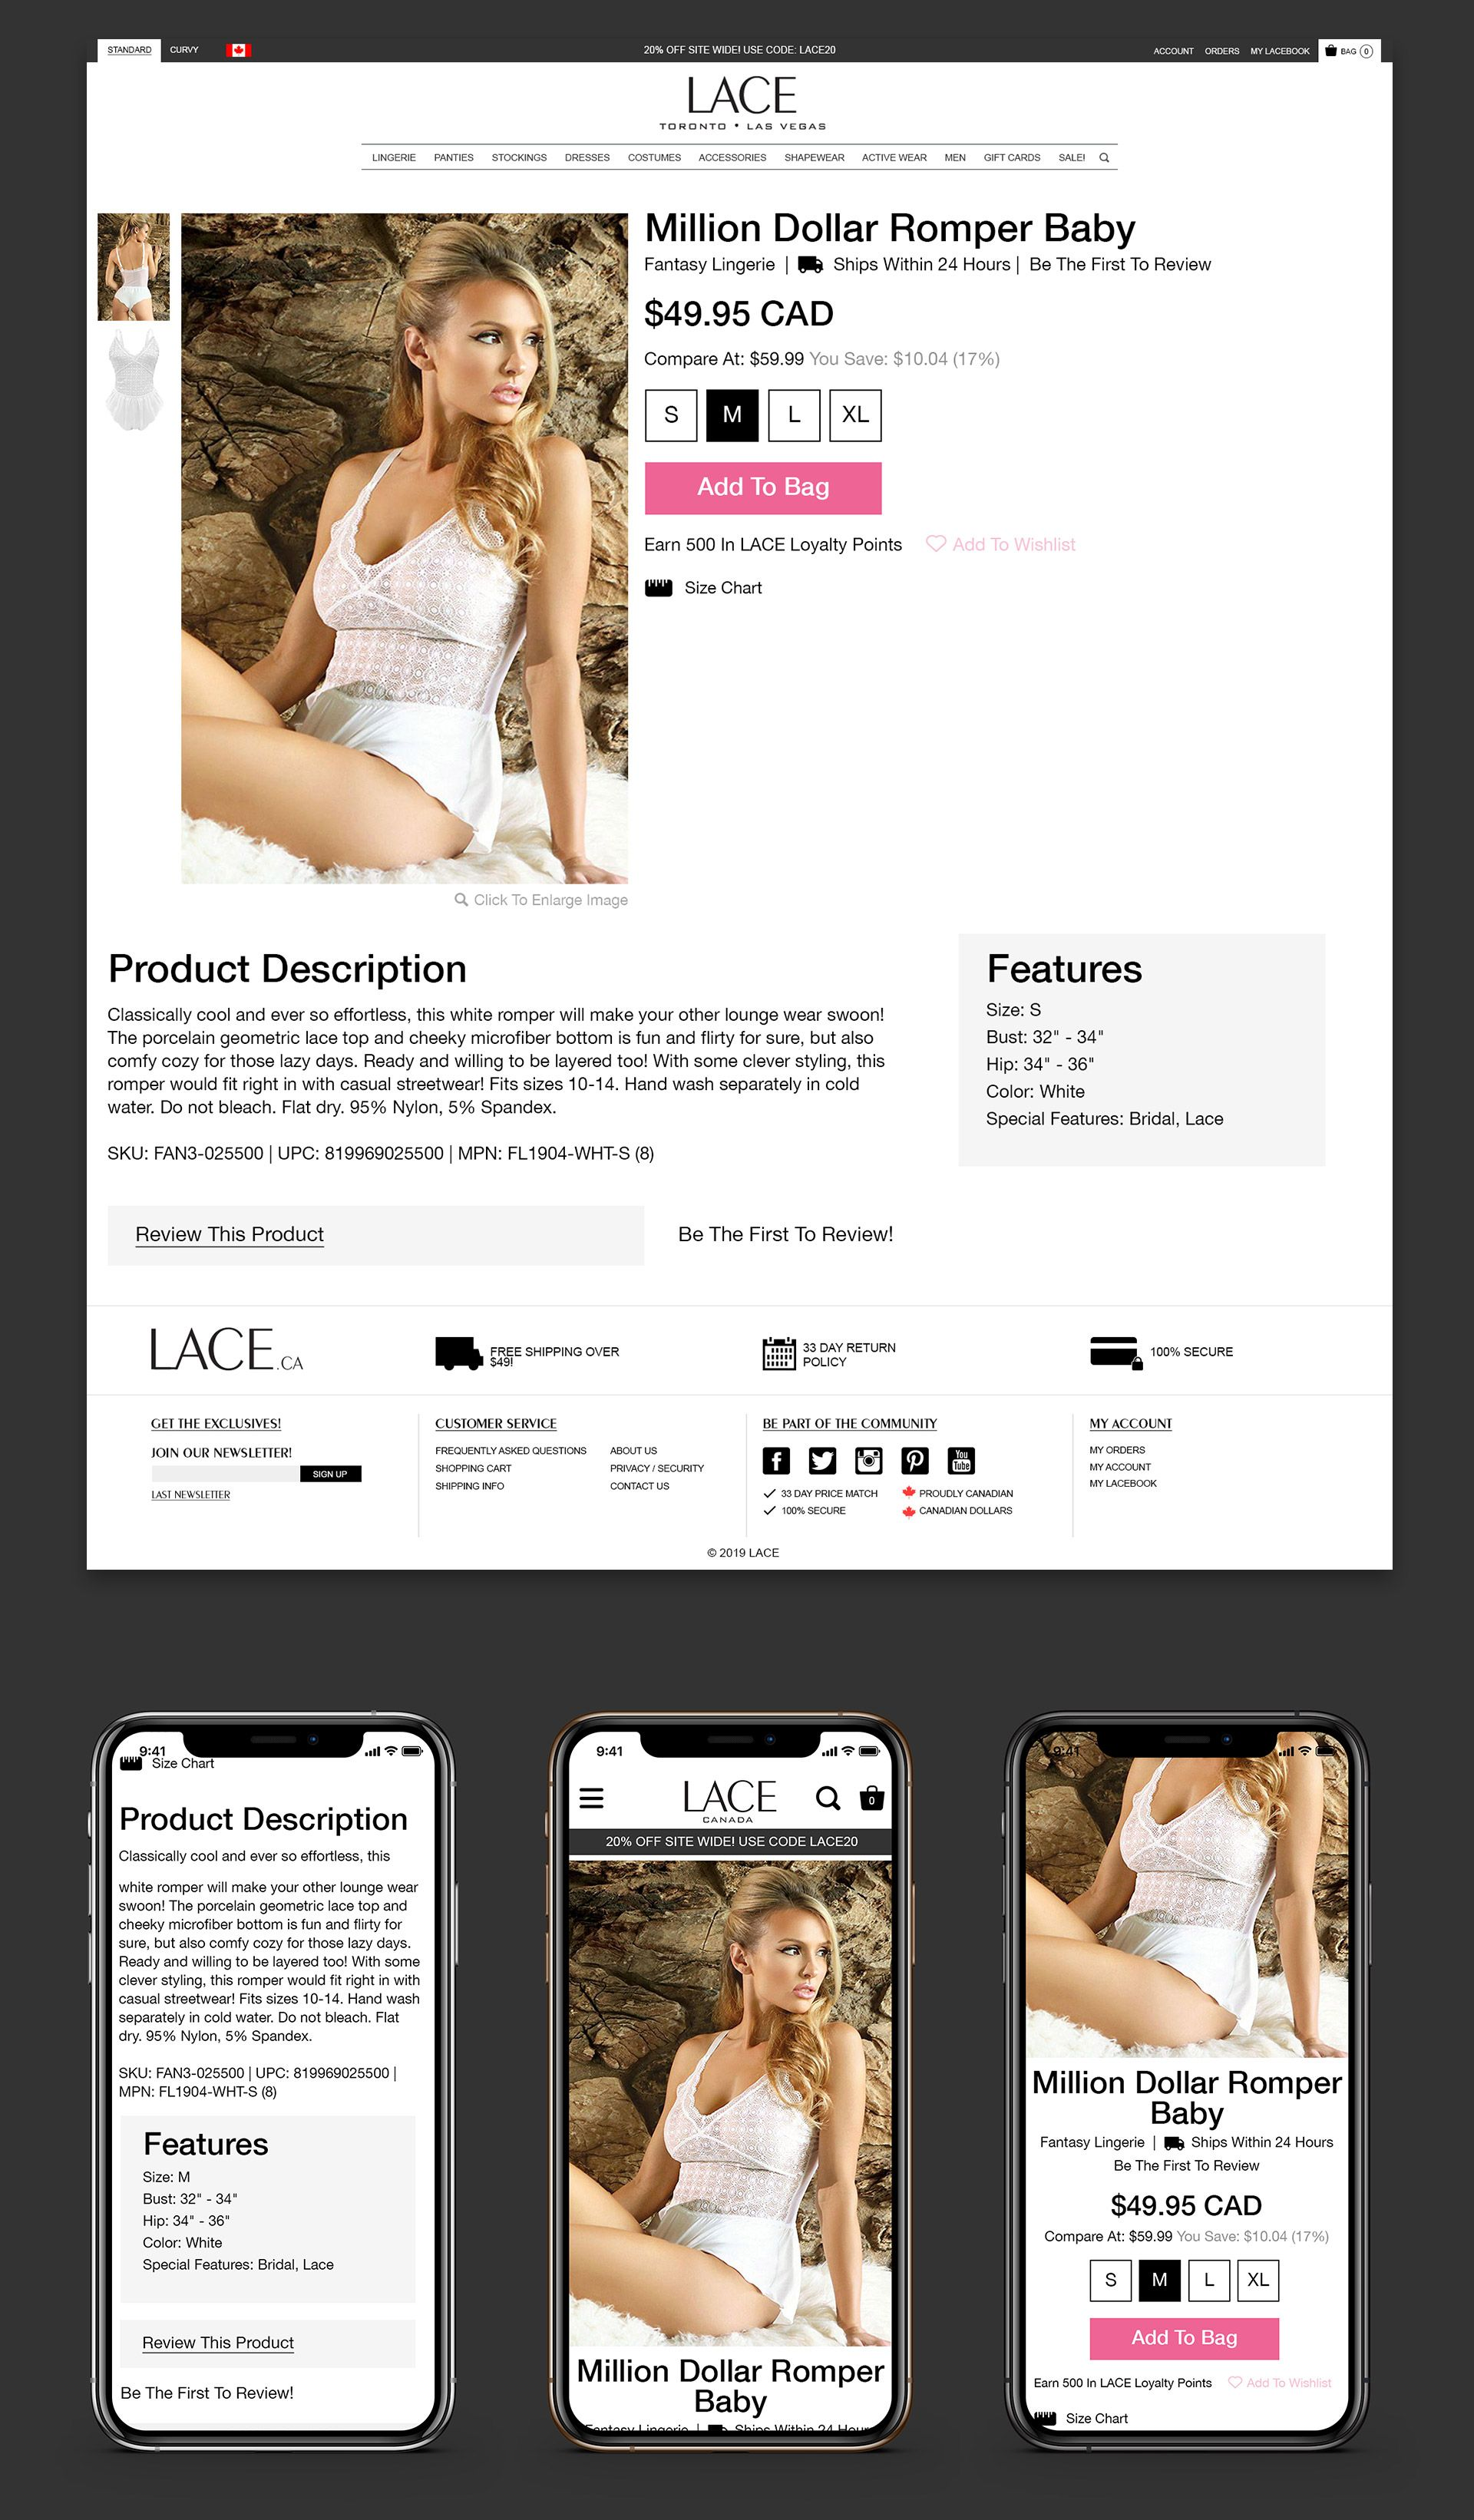 LACE Product Page Design